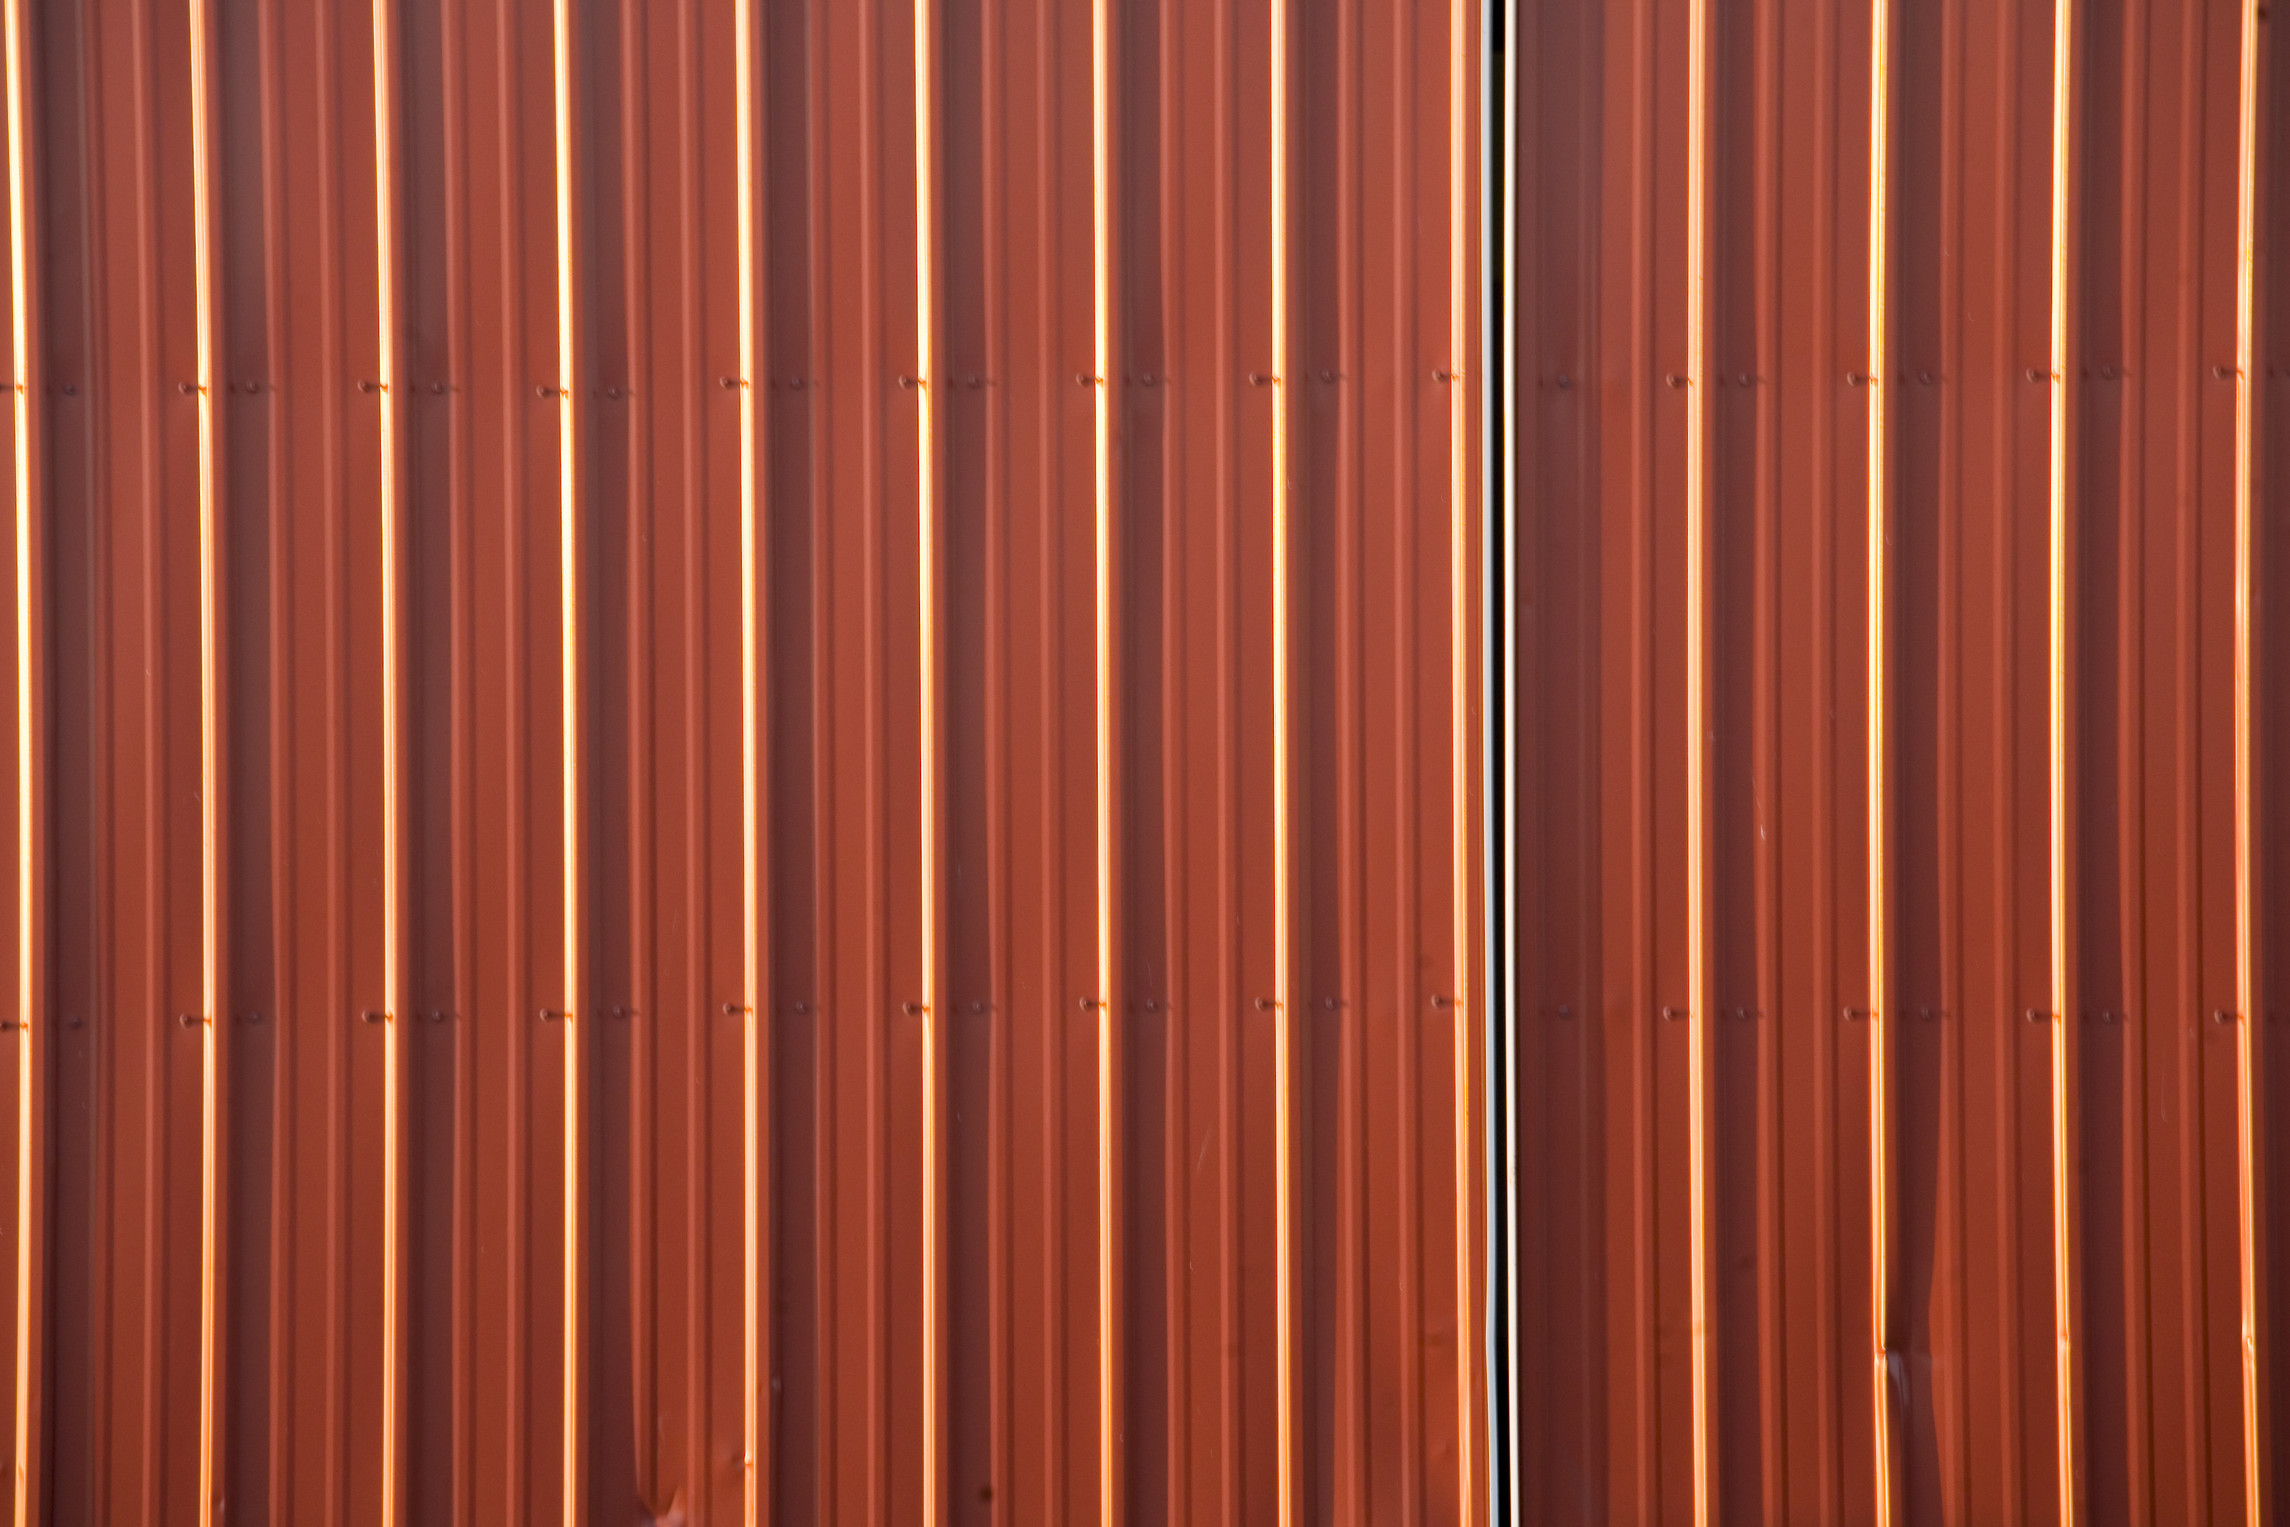 Metal Siding Sheets : Corrugated red metal sheet veracruz all natural mood